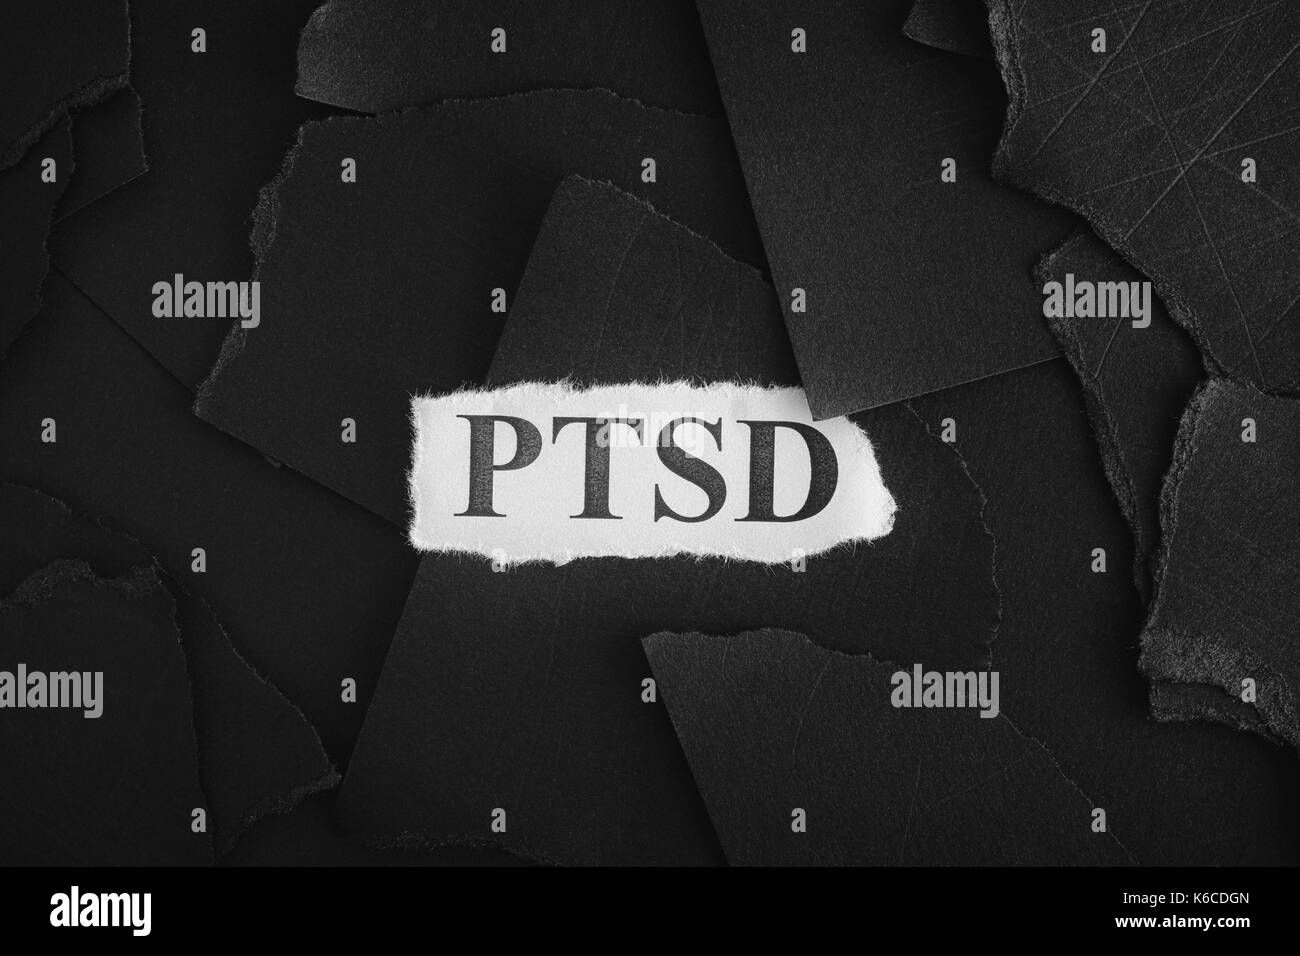 Post Traumatic Stress Disorder. Torn pieces of black paper and words Post Traumatic Stress Disorder. Concept Image. Black and White. Closeup. - Stock Image